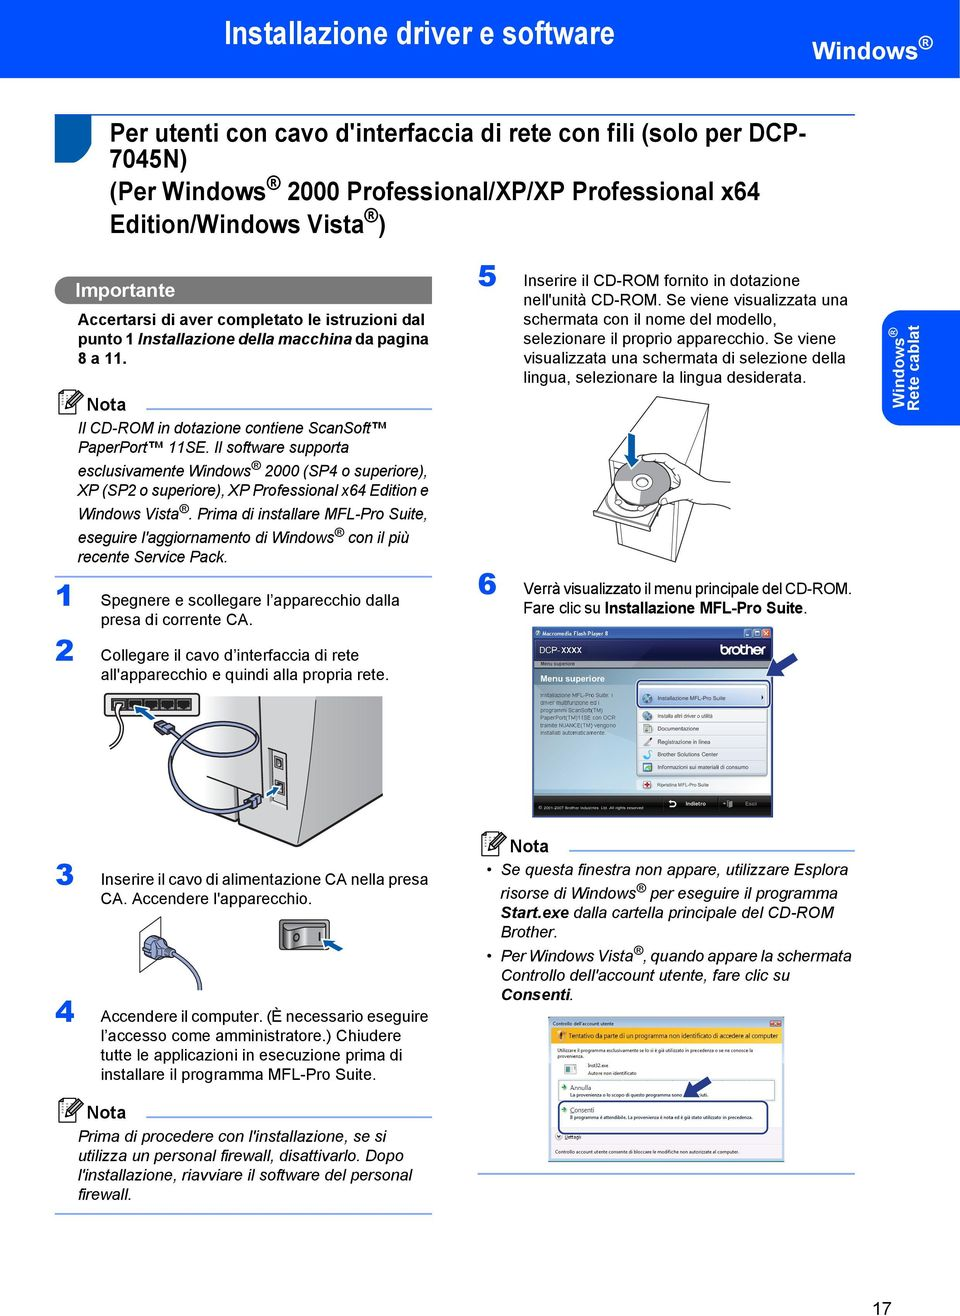 Il software supporta esclusivamente Windows 2000 (SP4 o superiore), XP (SP2 o superiore), XP Professional x64 Edition e Windows Vista.